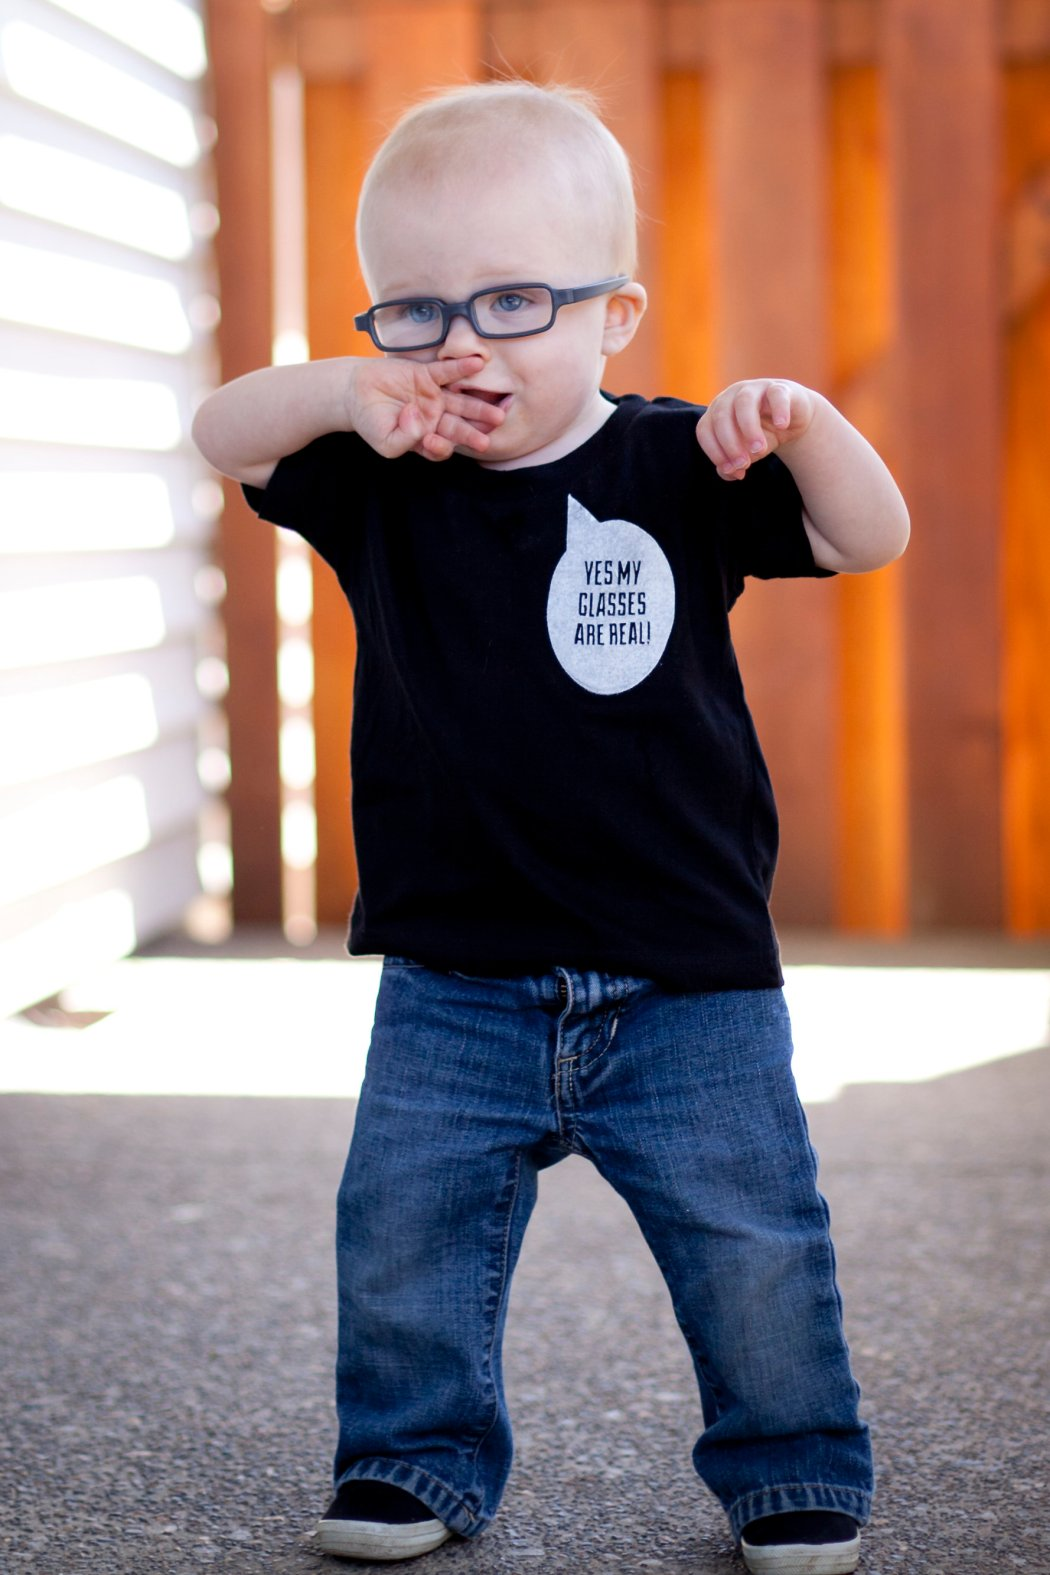 View More: http://jennybrookephotography.pass.us/super-baby